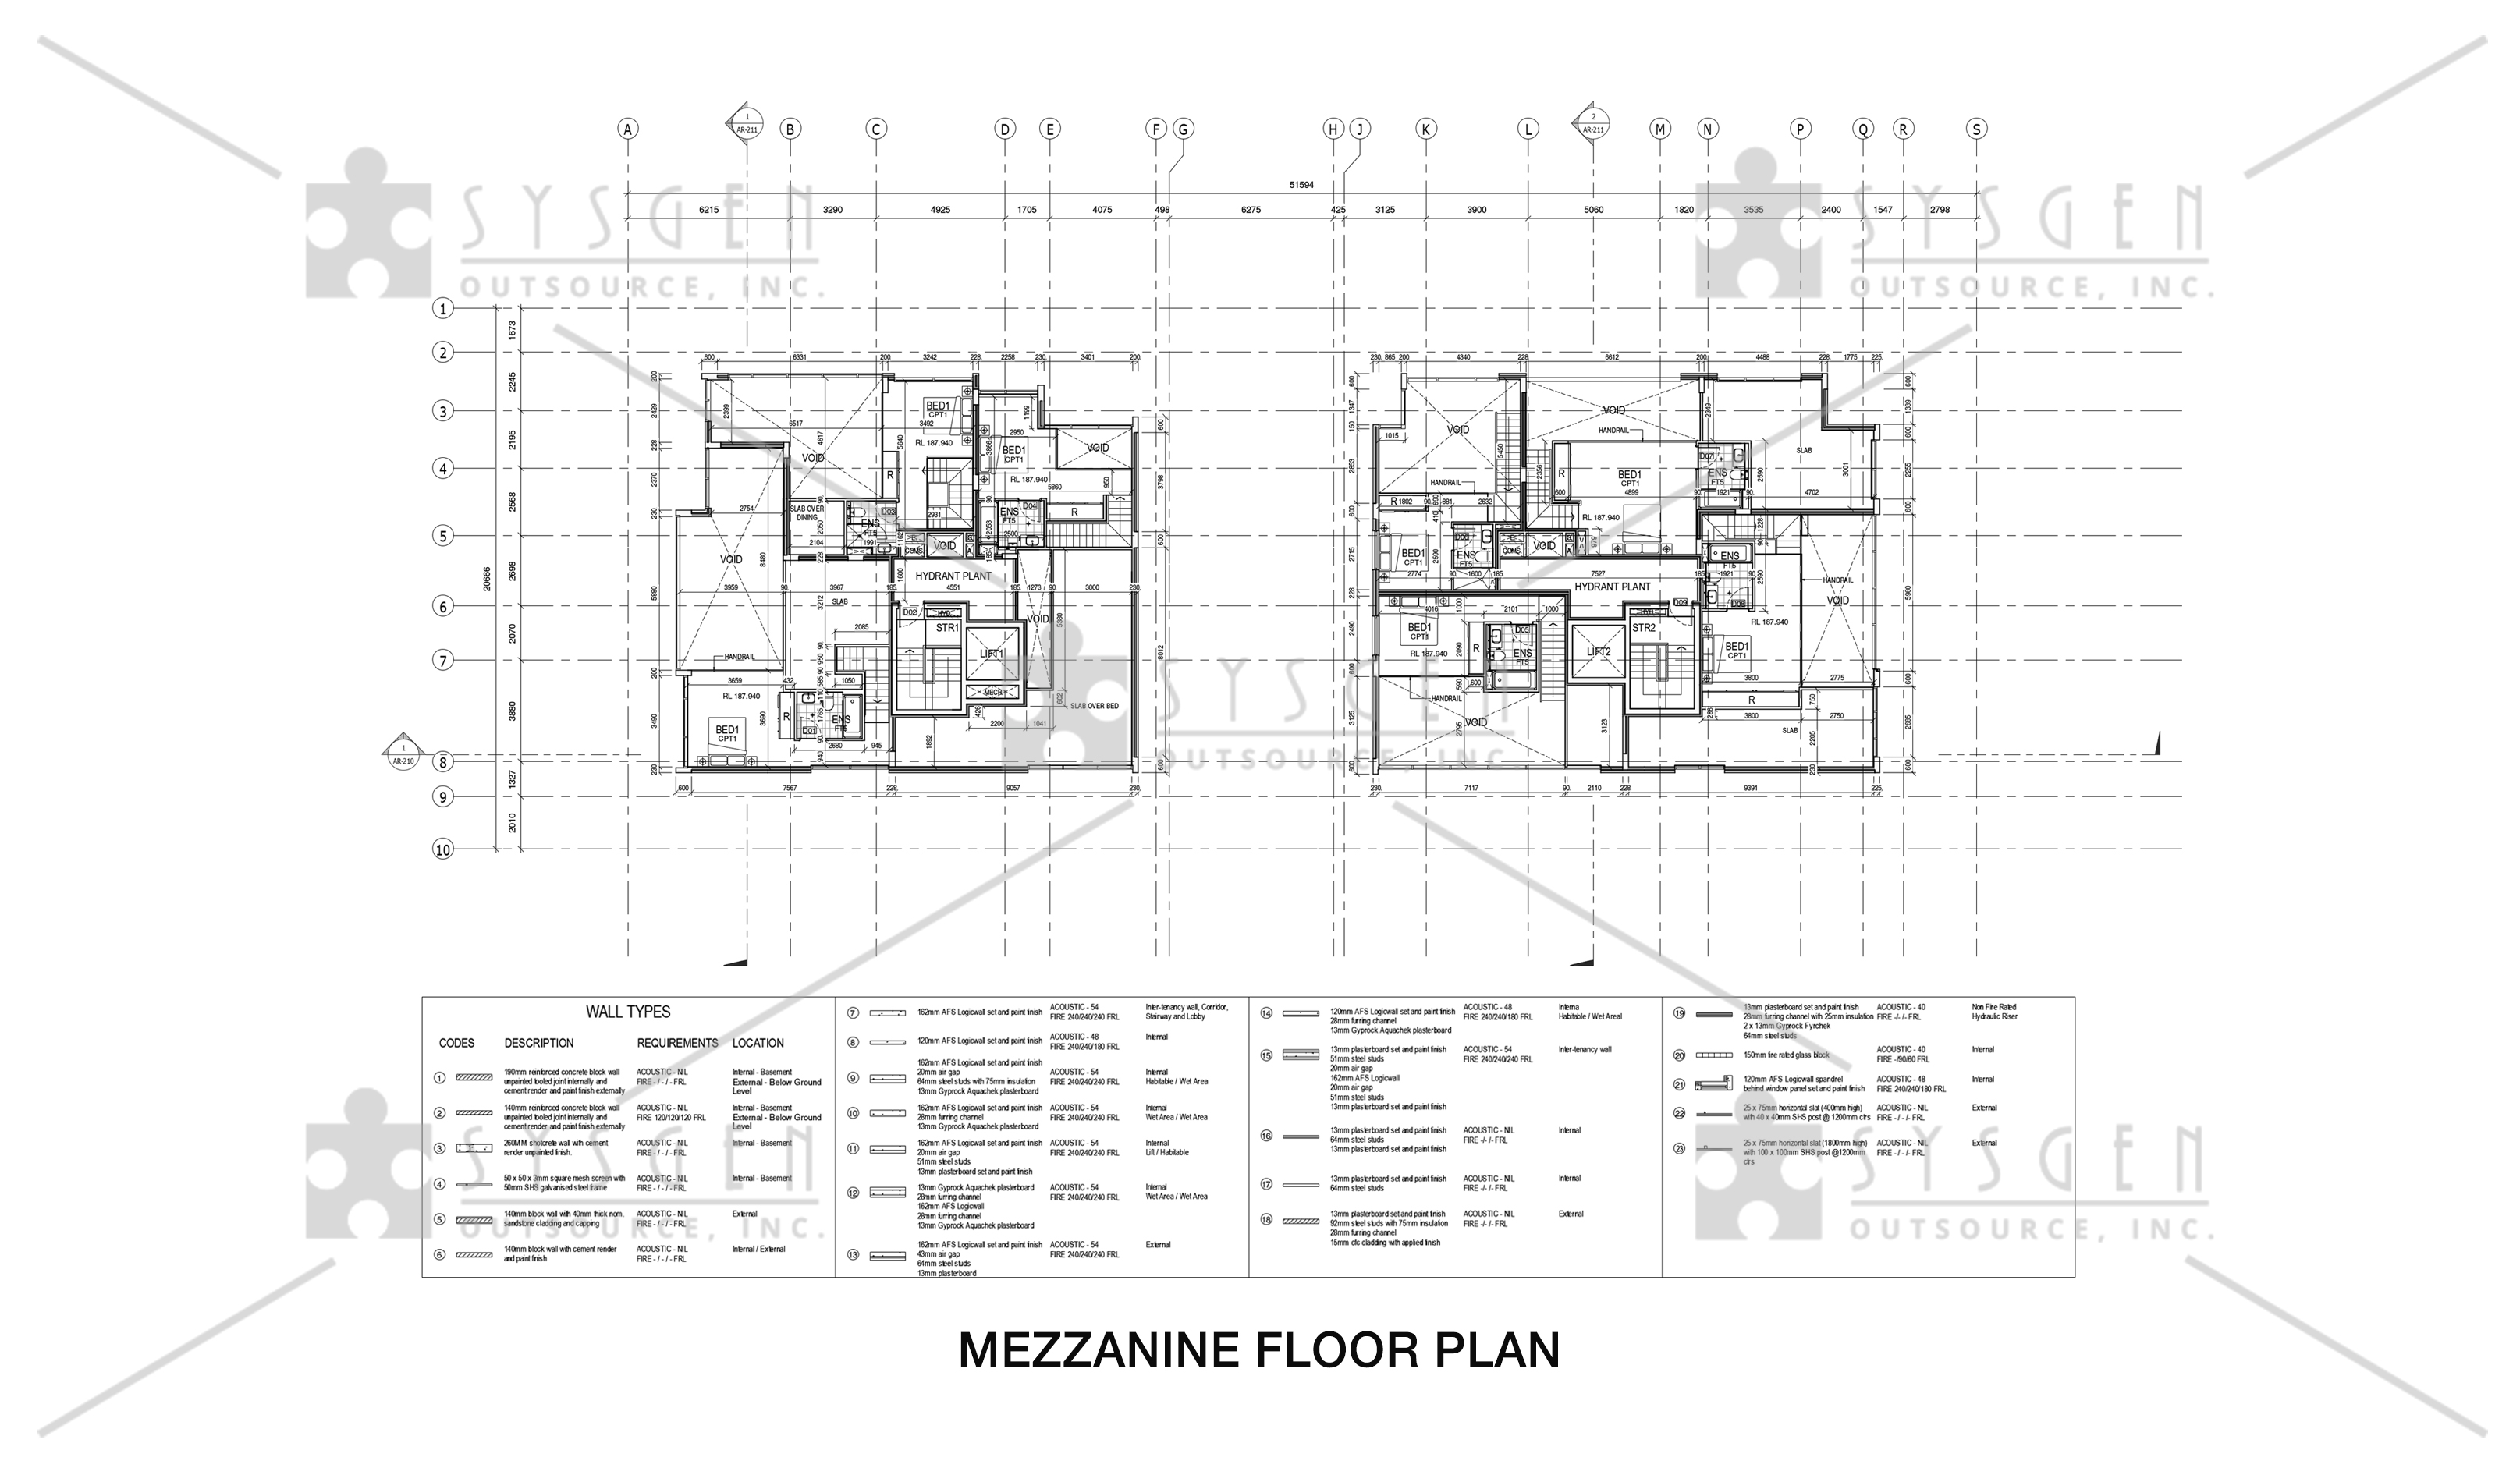 sysgen-outsource-cad-outsourcing-services-cad-conversion-revit-4-storey-residential9